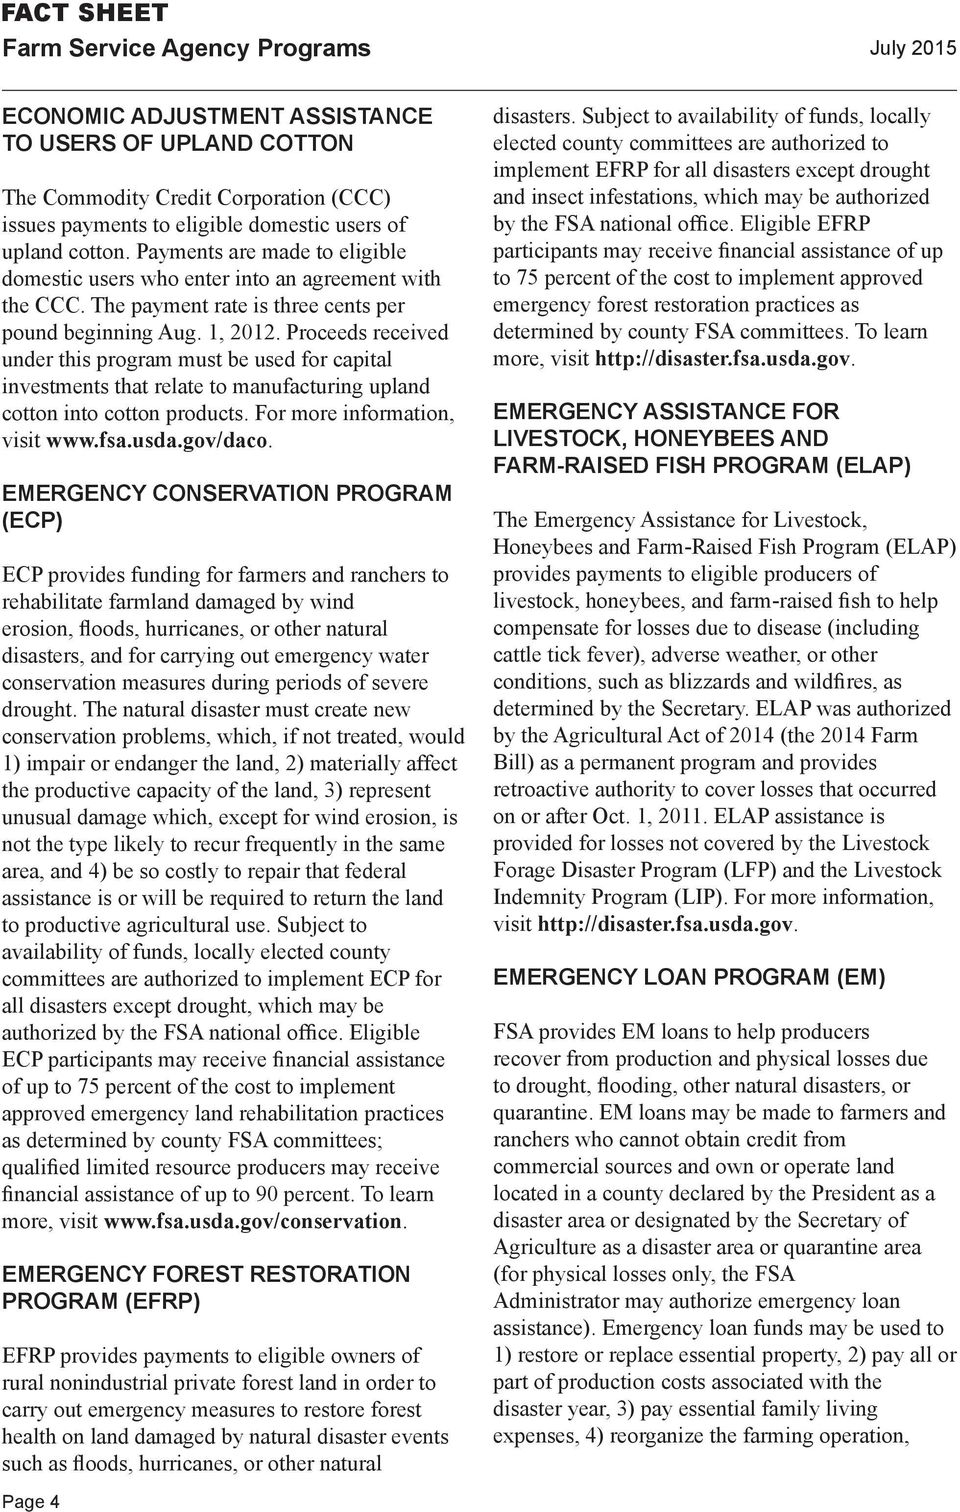 Proceeds received under this program must be used for capital investments that relate to manufacturing upland cotton into cotton products. For more information, visit www.fsa.usda.gov/daco.